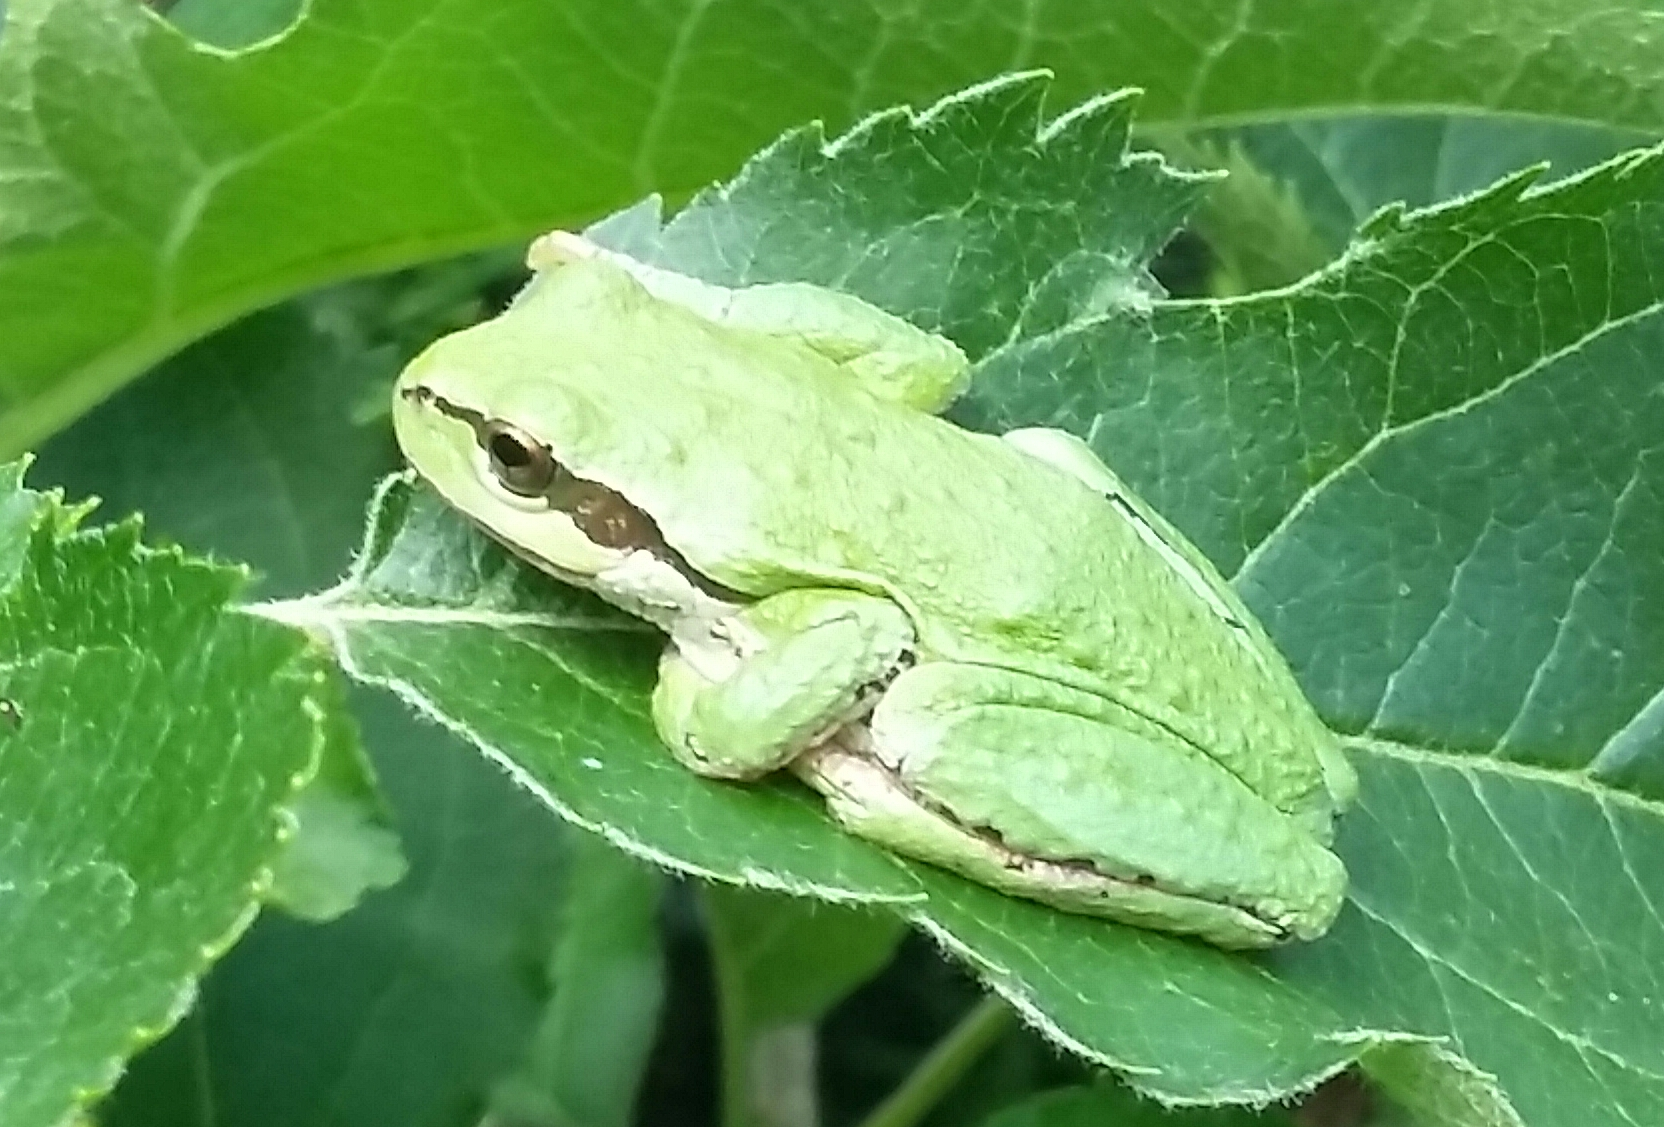 Green Tree Frog – Lower Mainland (unidentified)